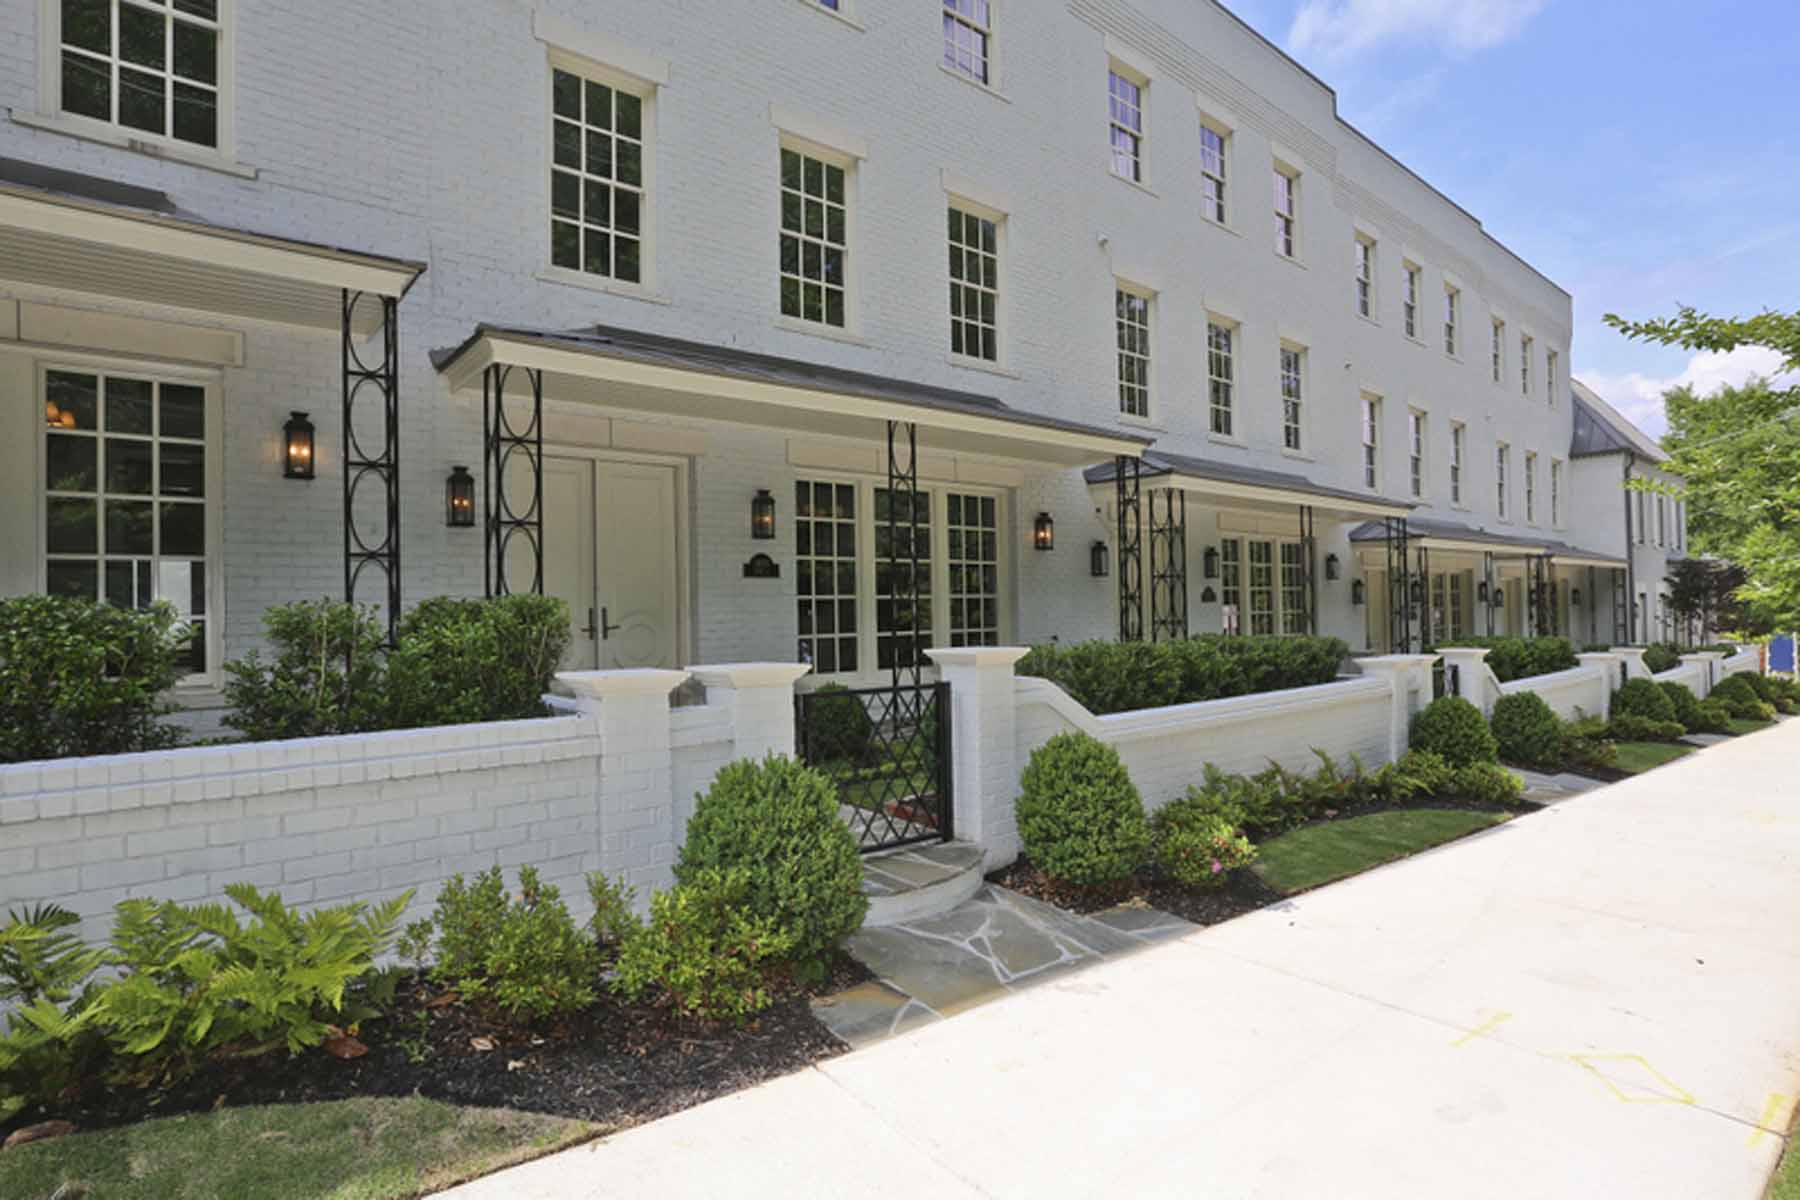 Townhouse for Sale at BRAND NEW TOWNHOME BY MONTE HEWETT HOMES. 1400 Piedmont Avenue NE No. 2 Atlanta, Georgia, 30309 United States